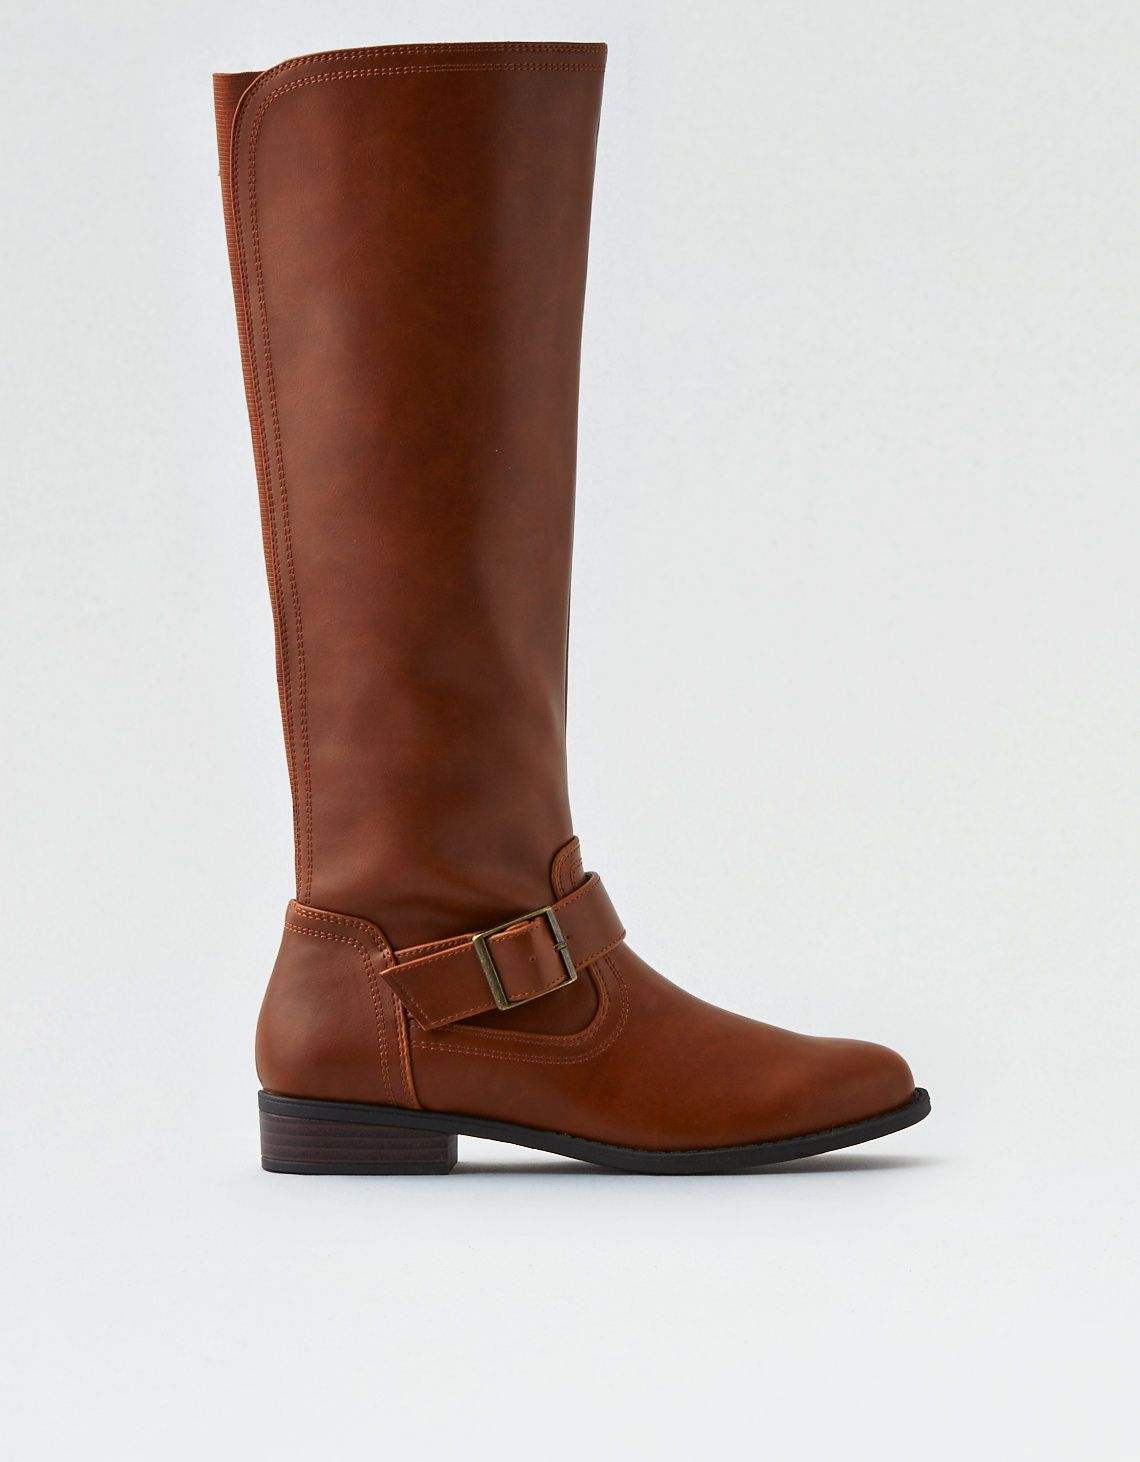 8f894fd5194 AEO Tall Riding Boot, Tan | New Shoes | Tall riding boots, Riding ...